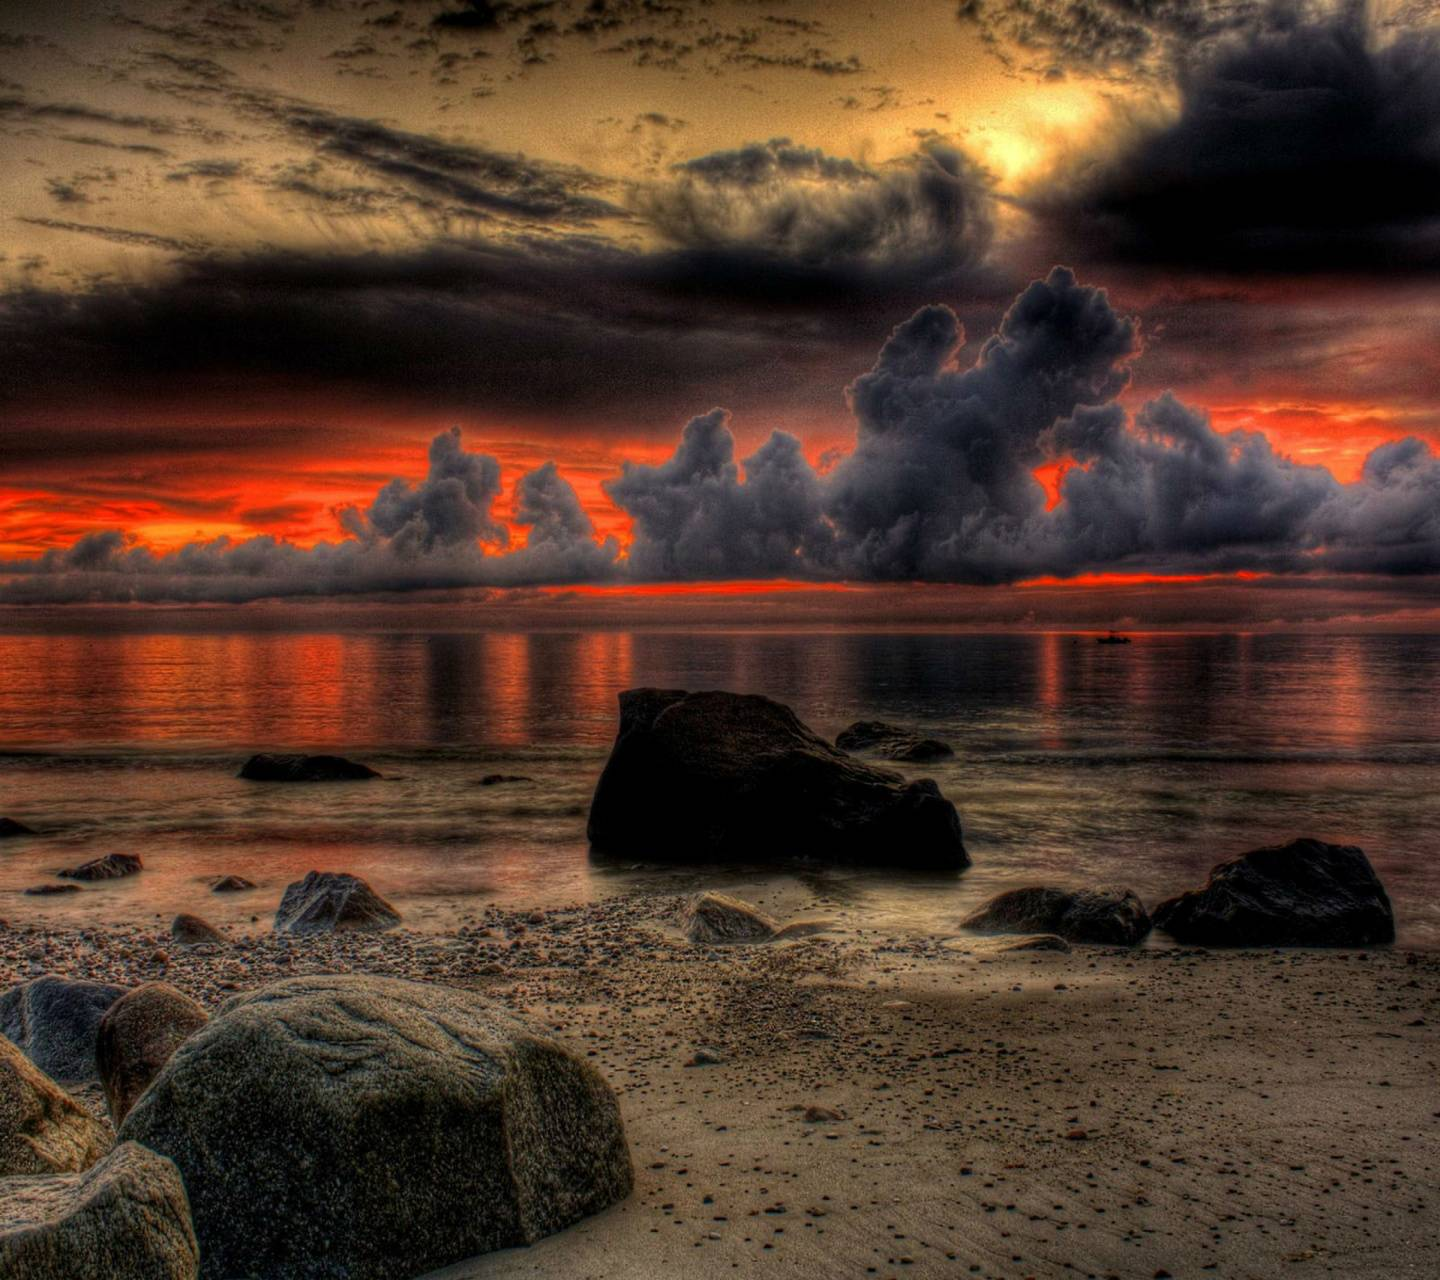 Red Sunset Hd Wallpaper By __LOV3ABL3__